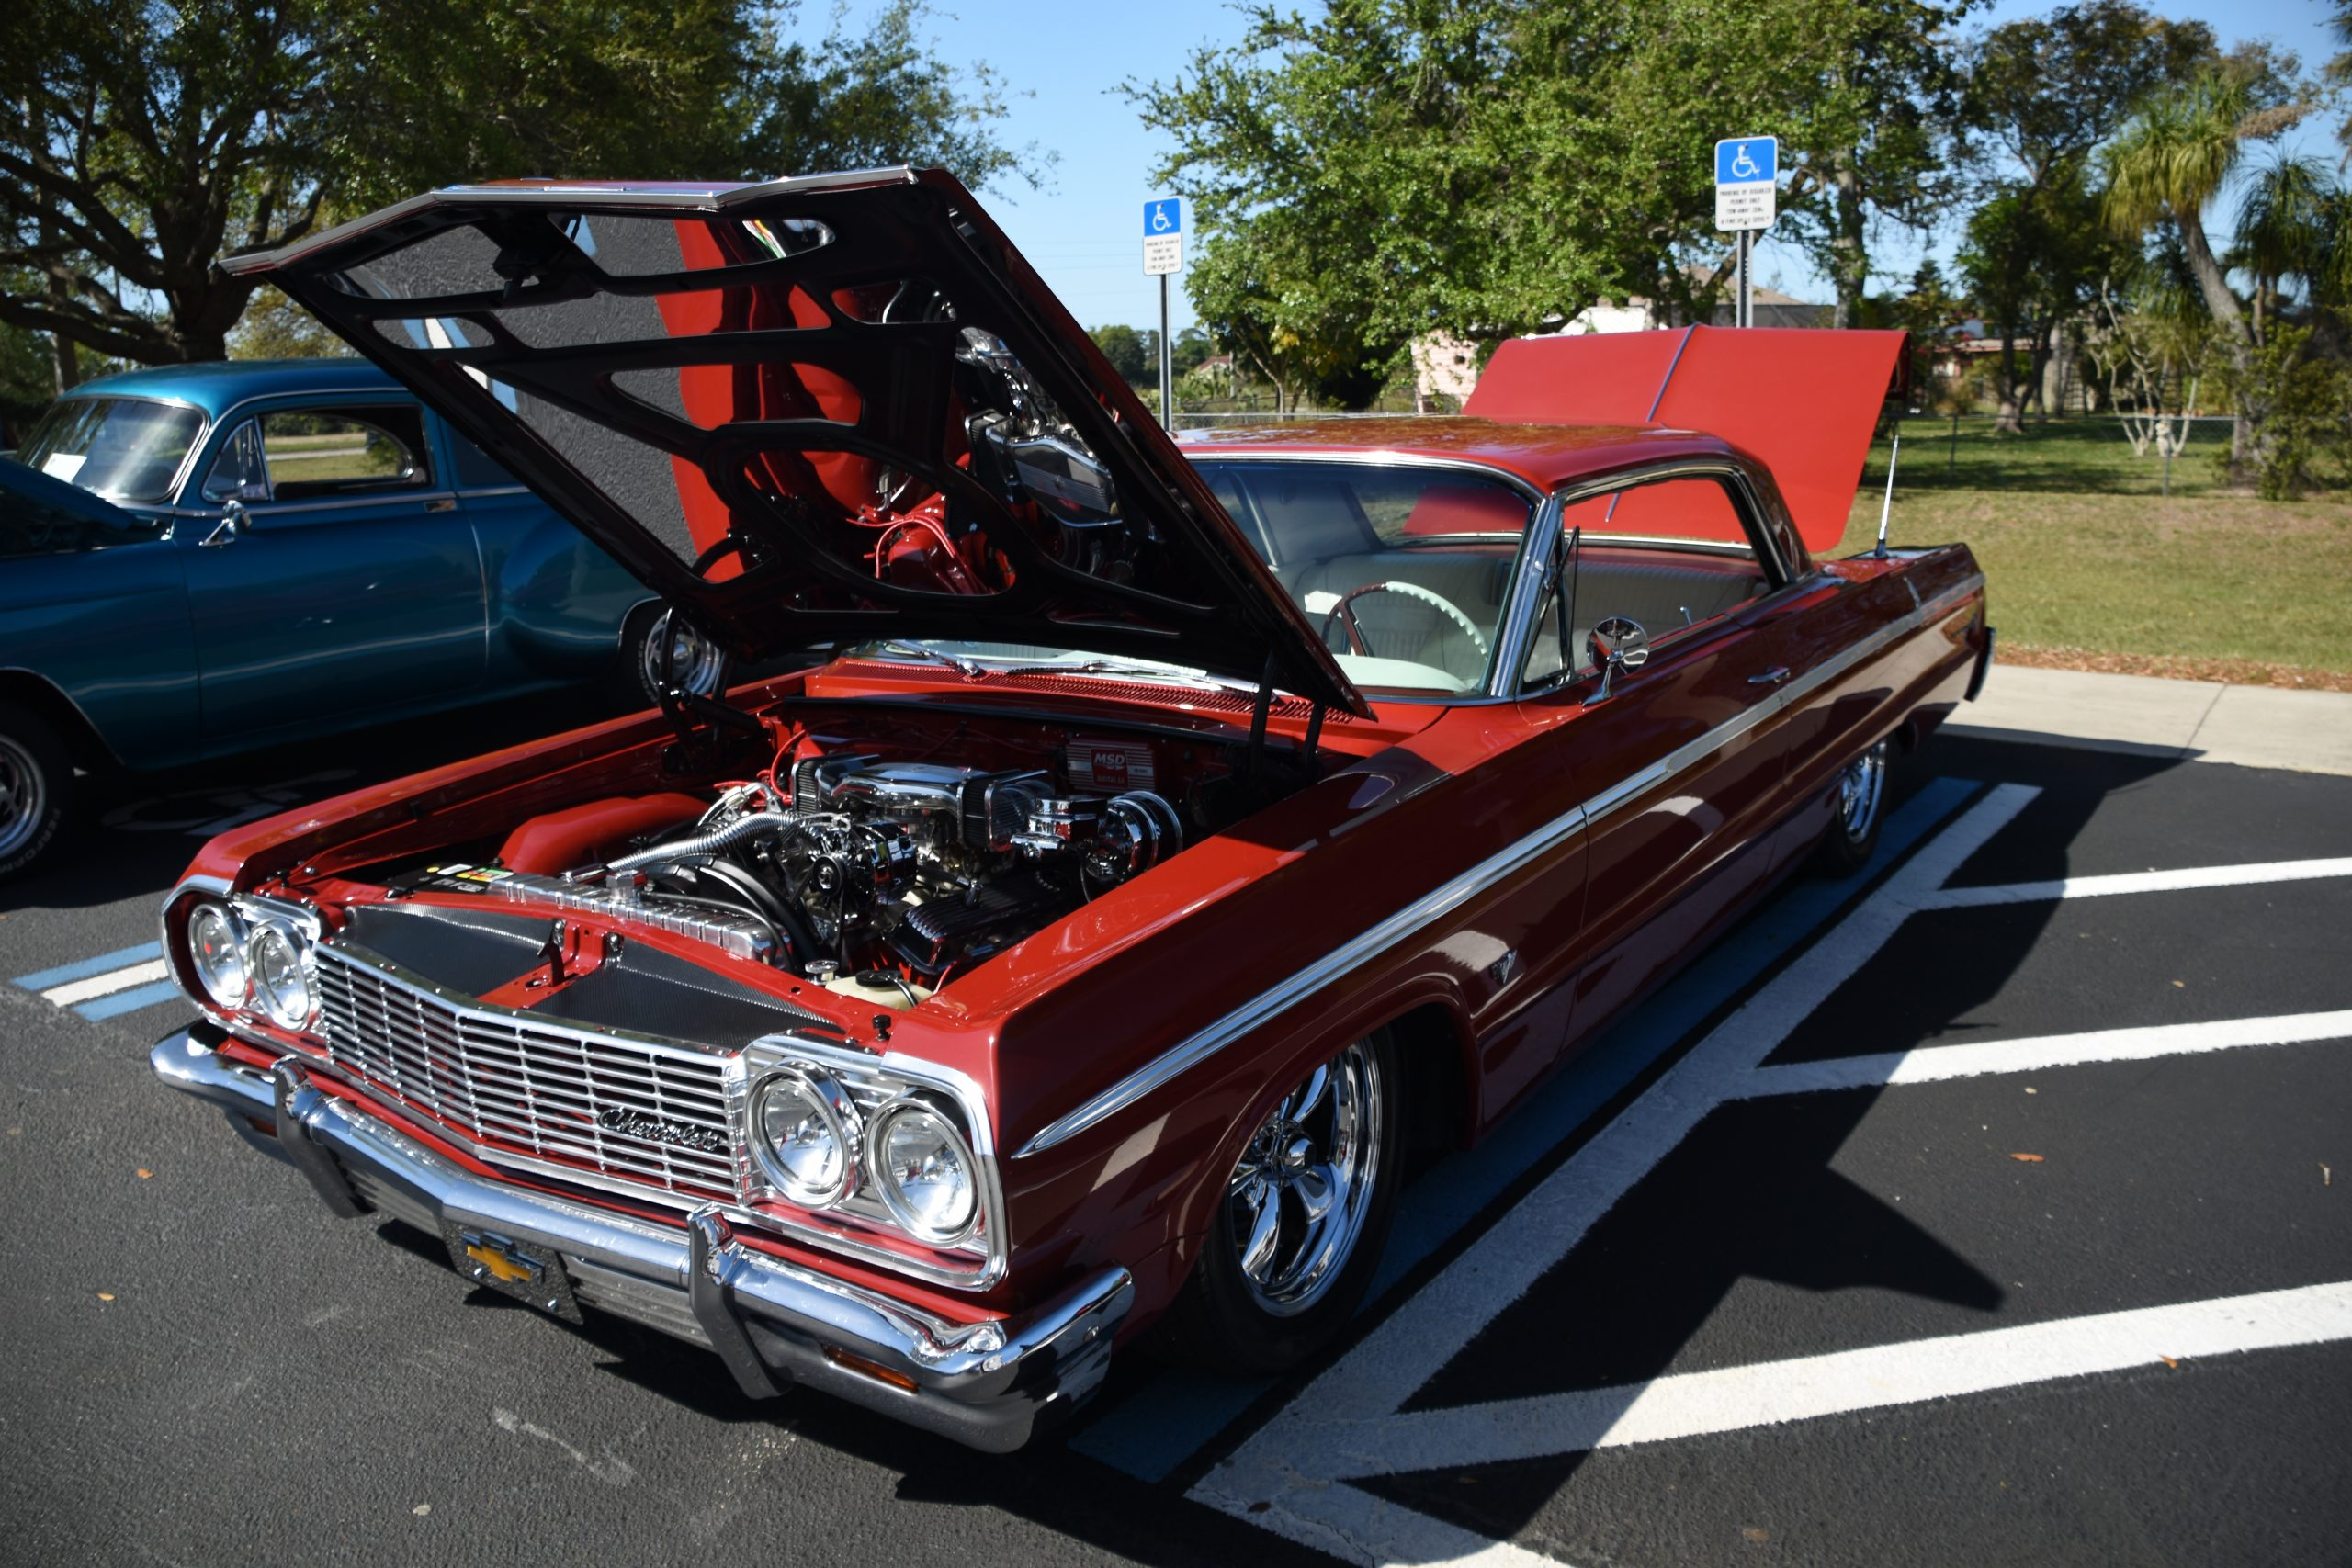 Red Chevy Impala with hood up